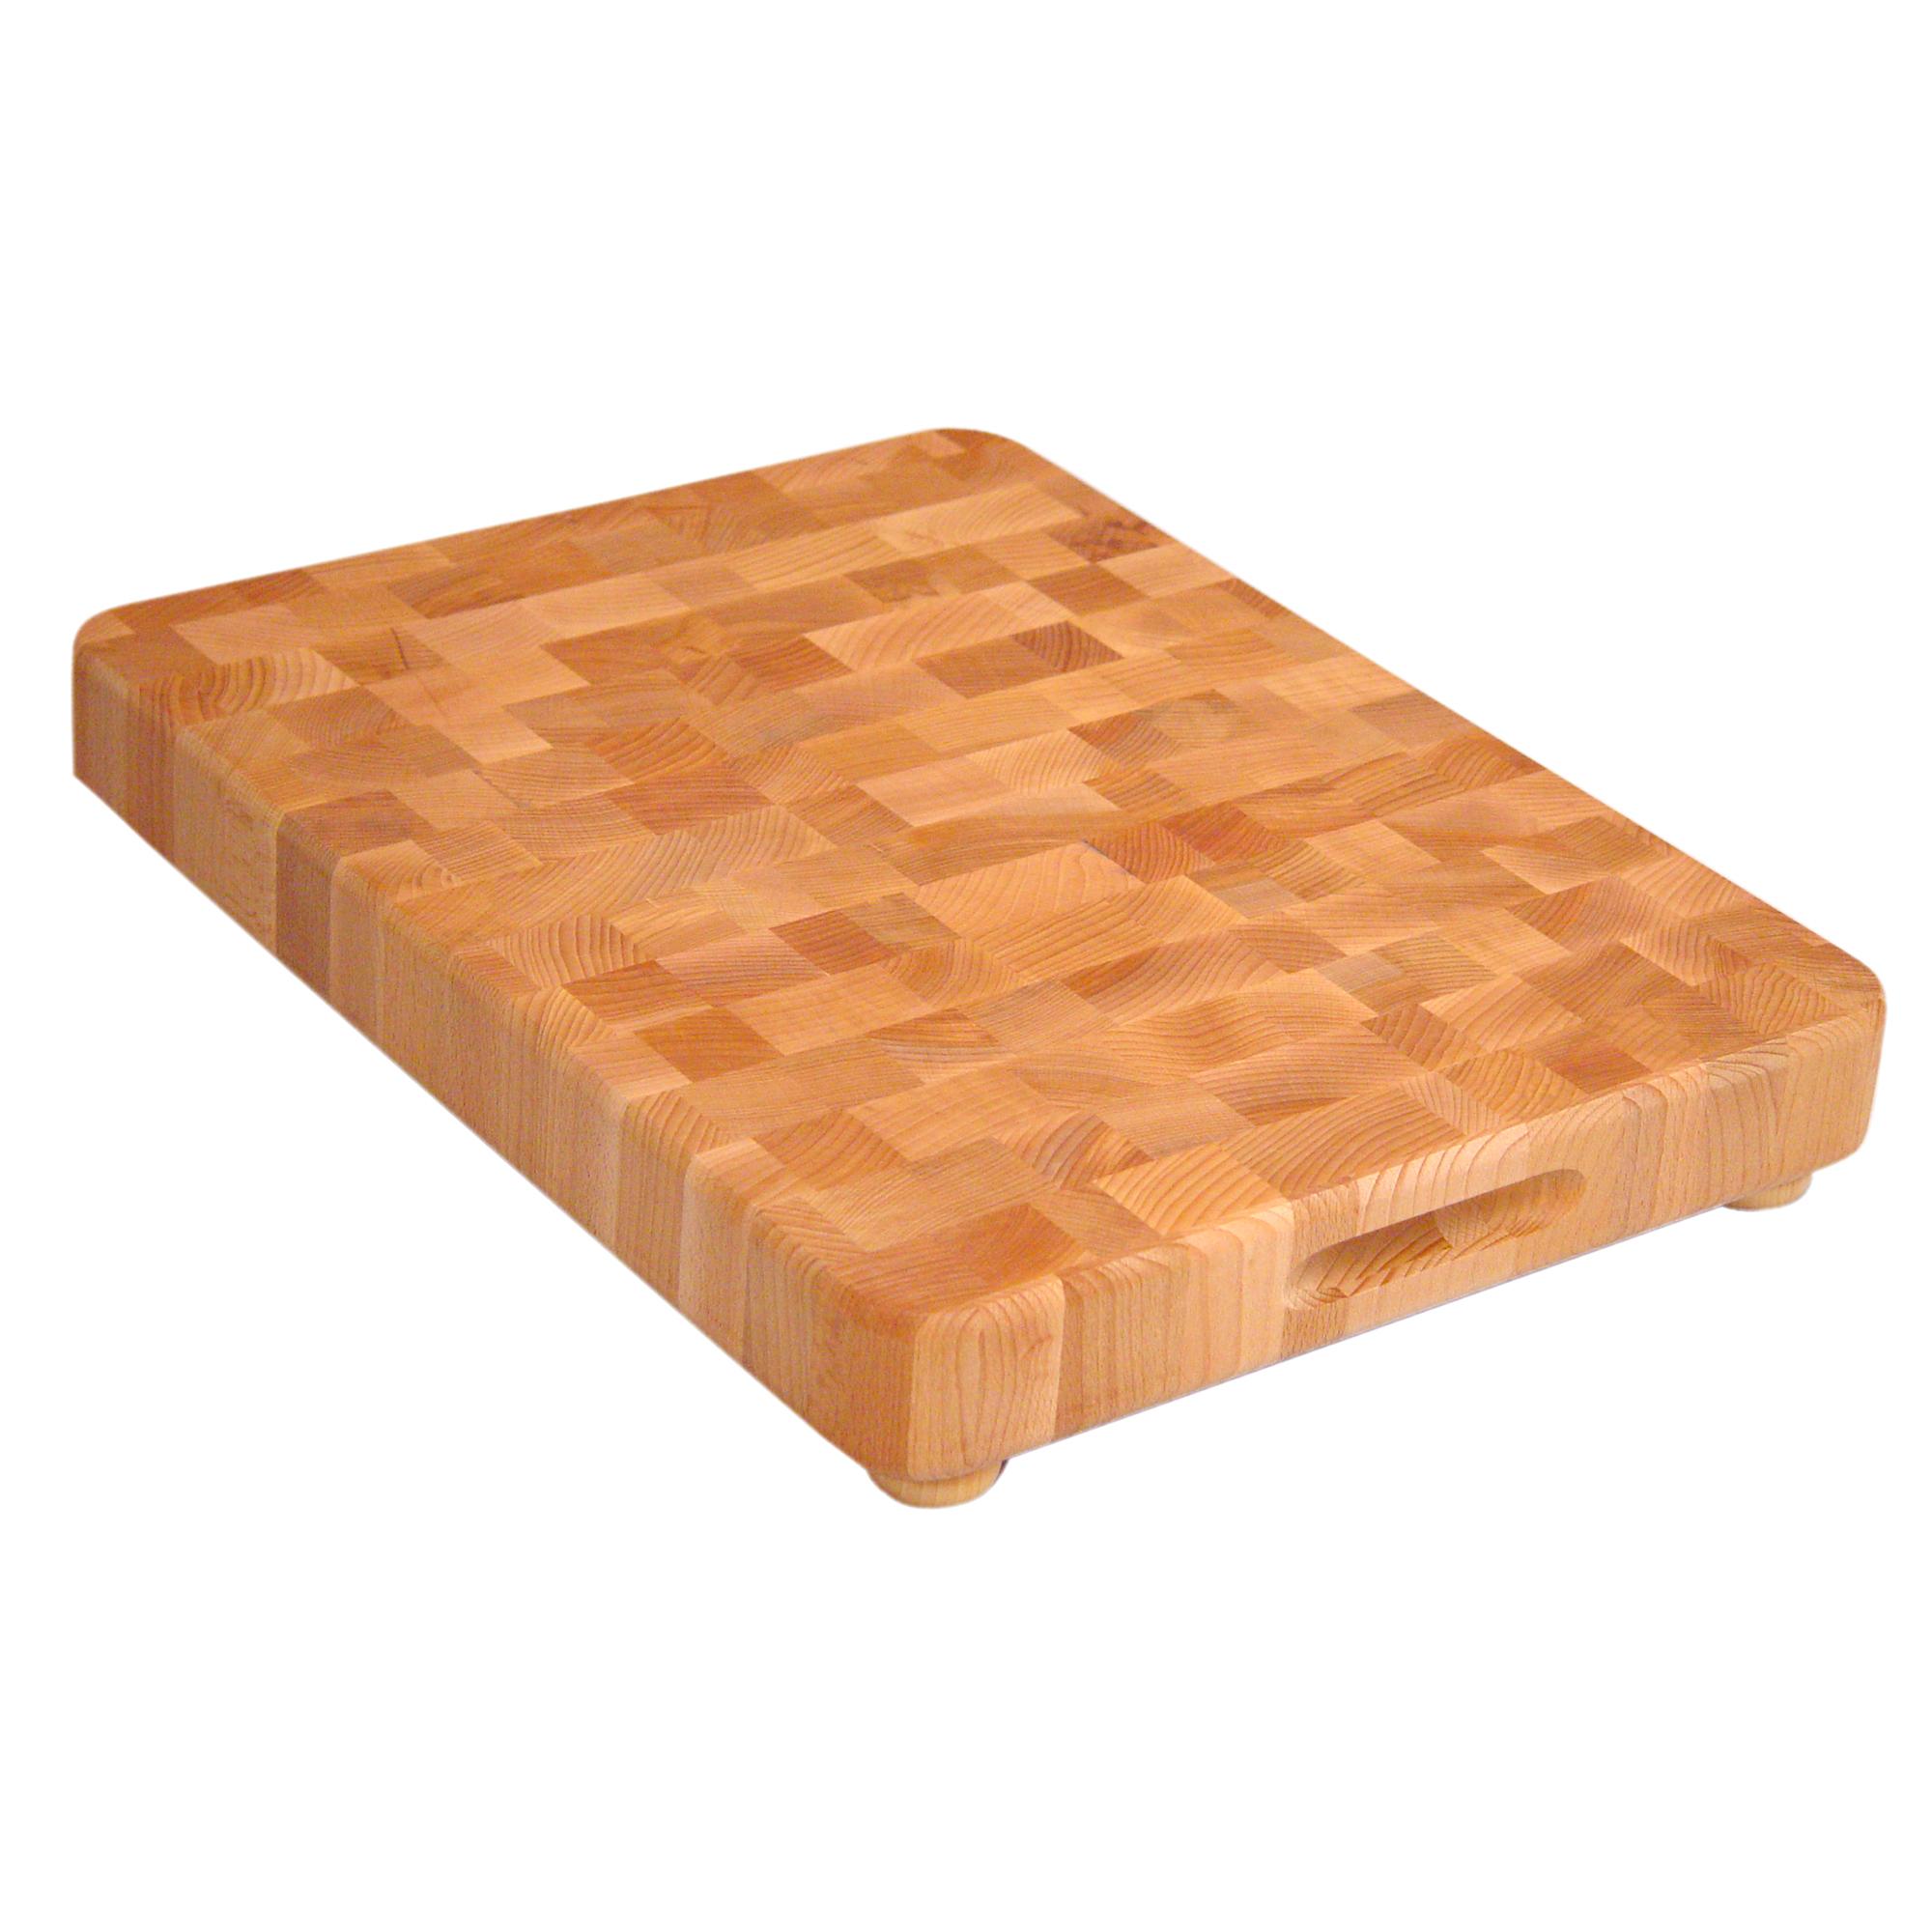 Catskill End-Grain Chopping Block with Feet - 17